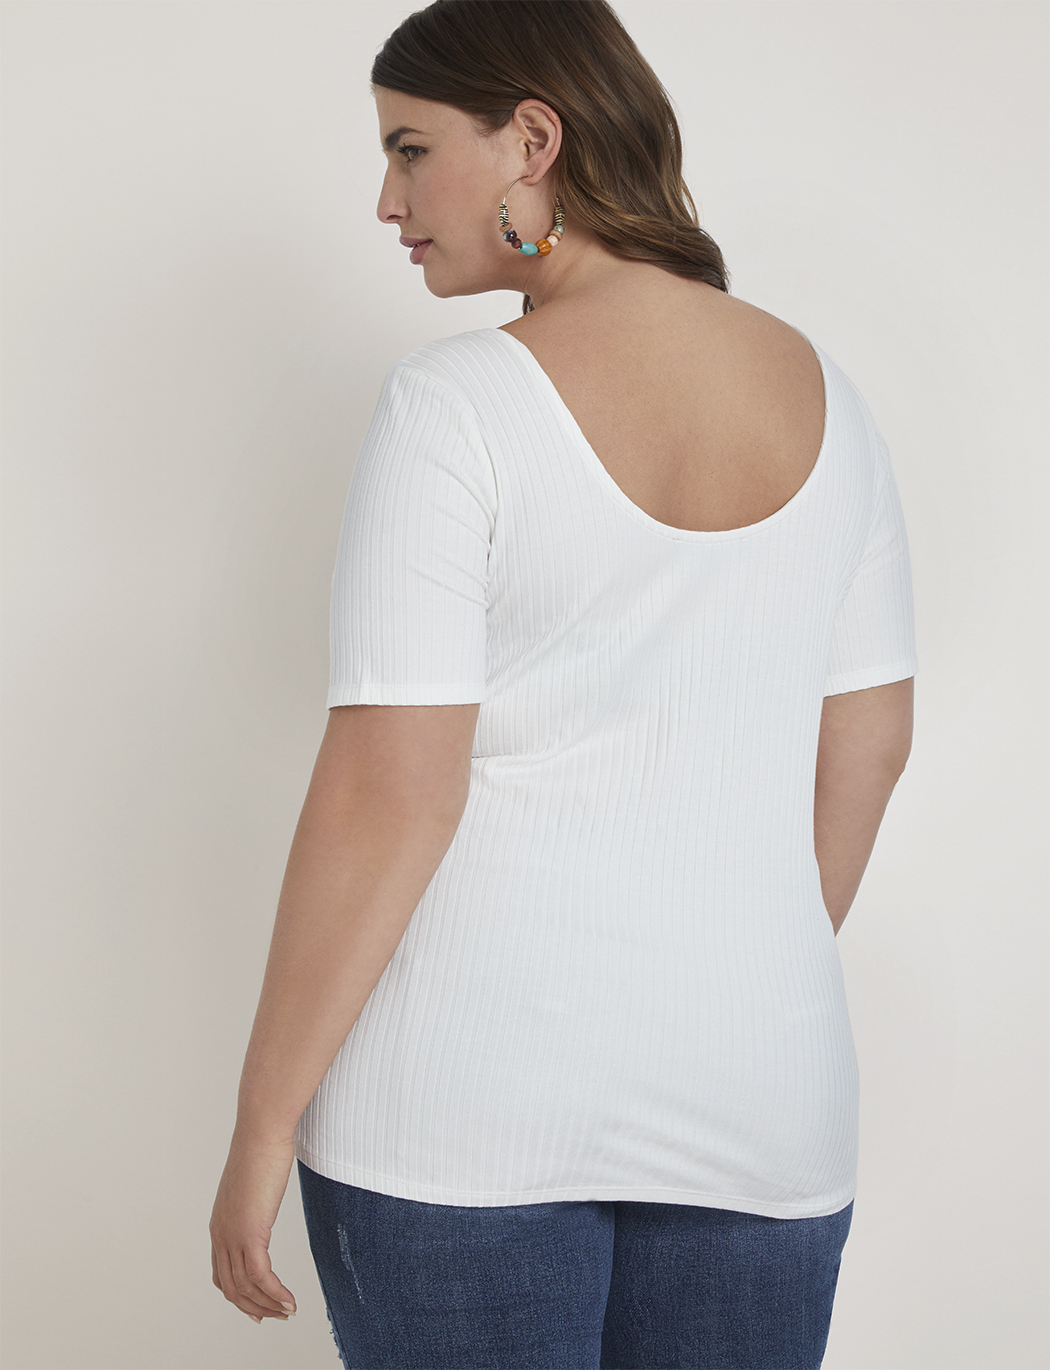 Square Neck Tee with Wooden Buckle